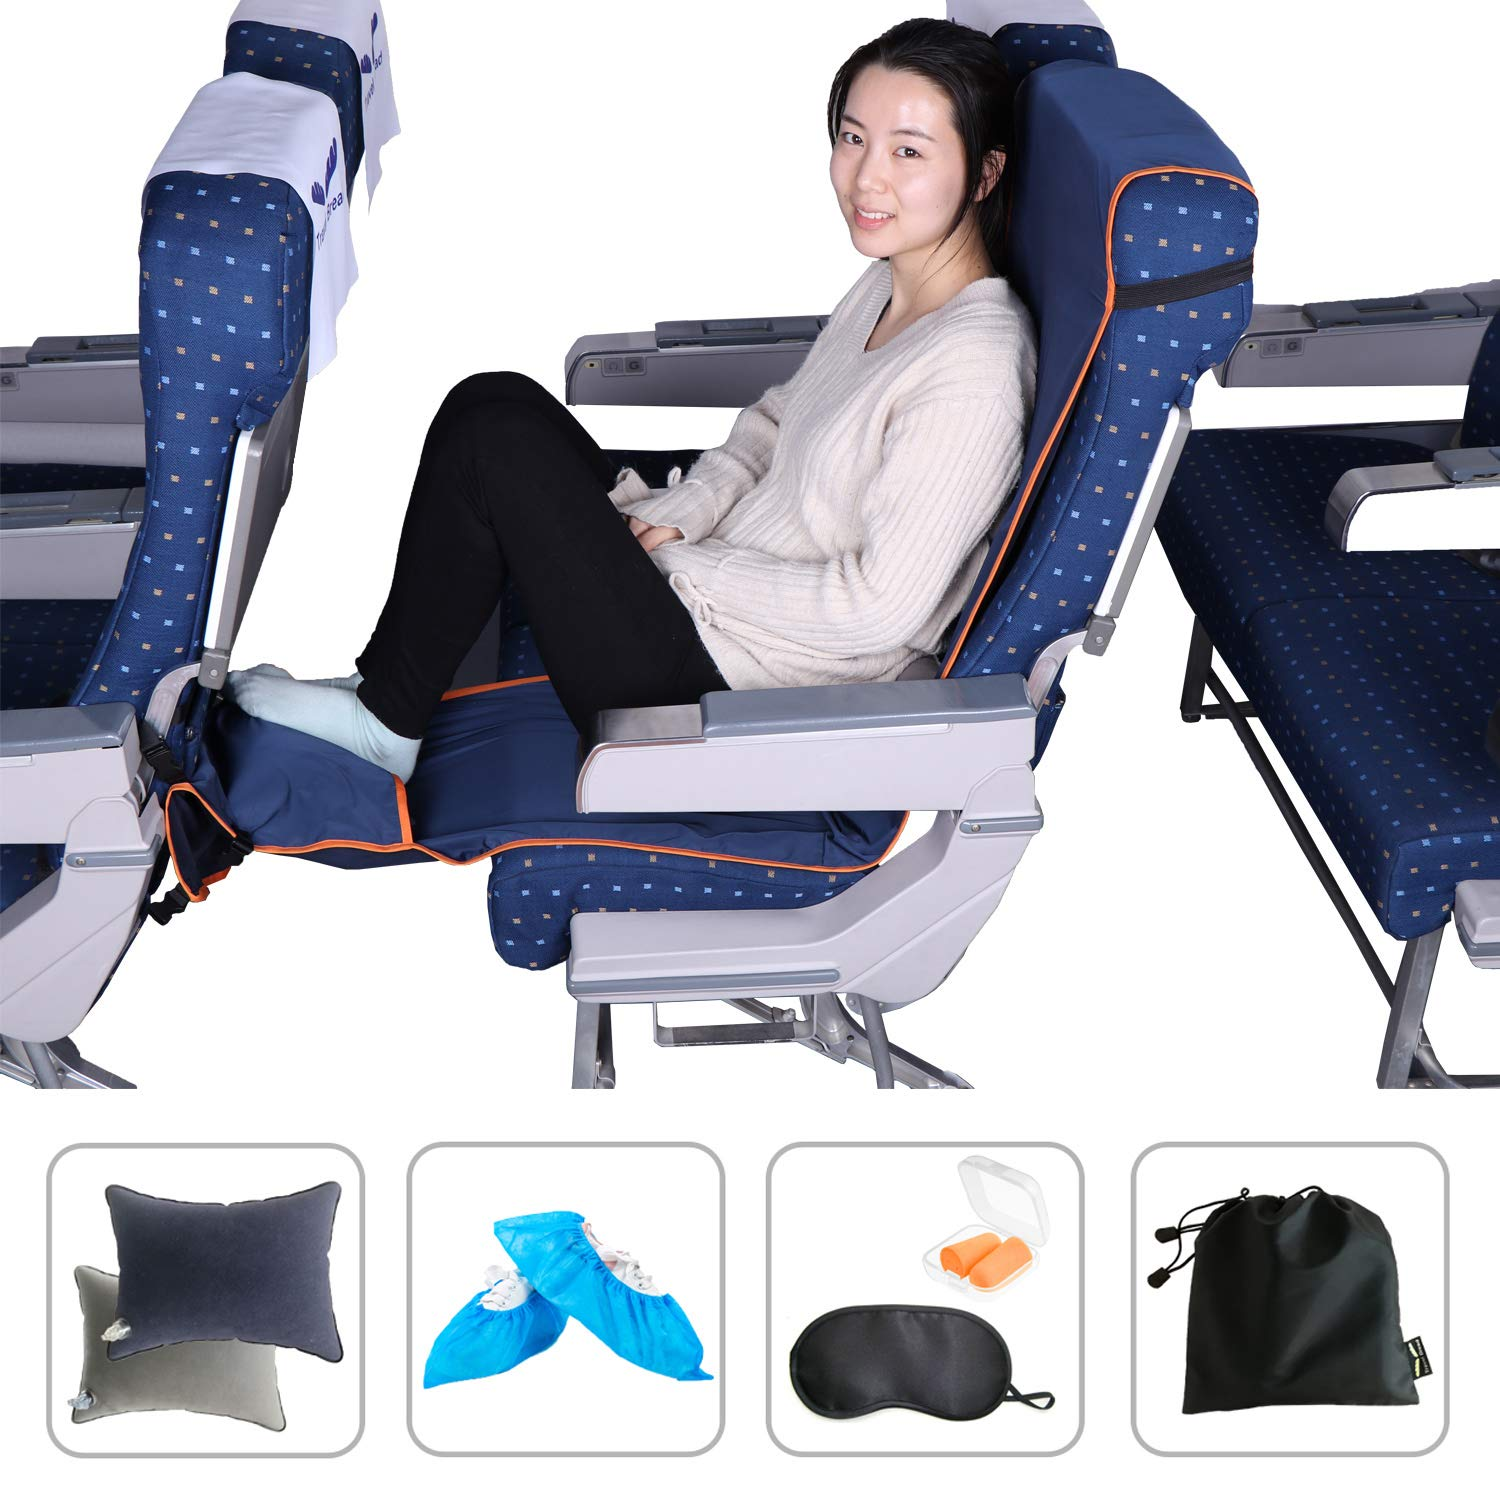 Travel Bread Airplane Footrest Hammock, Portable Travel Footrest with Inflatable Pillows, 3-Level Adjustable Height Foot Rest Hammock Flight Carry-On Foot Rest Provides Relaxation and Comfort (Blue)